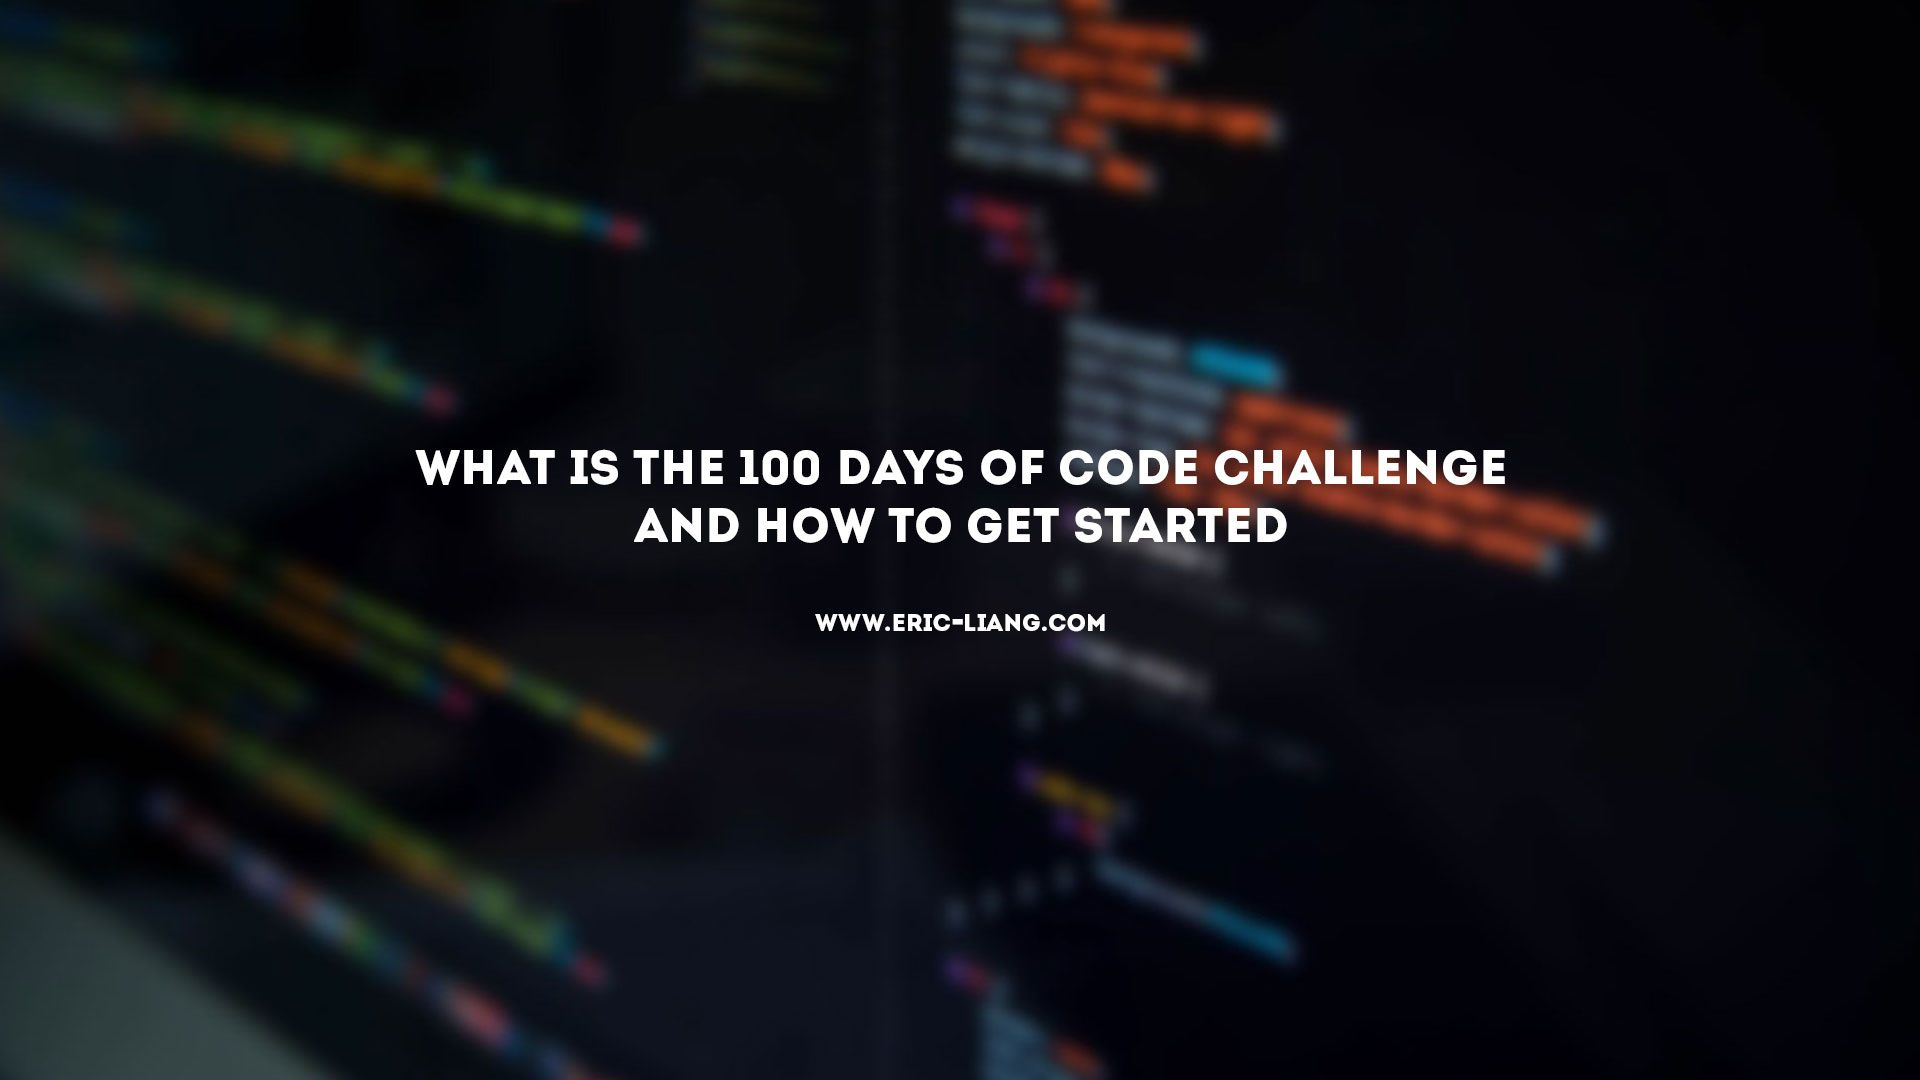 What Is The 100 Days of Code Challenge And How To Get Started